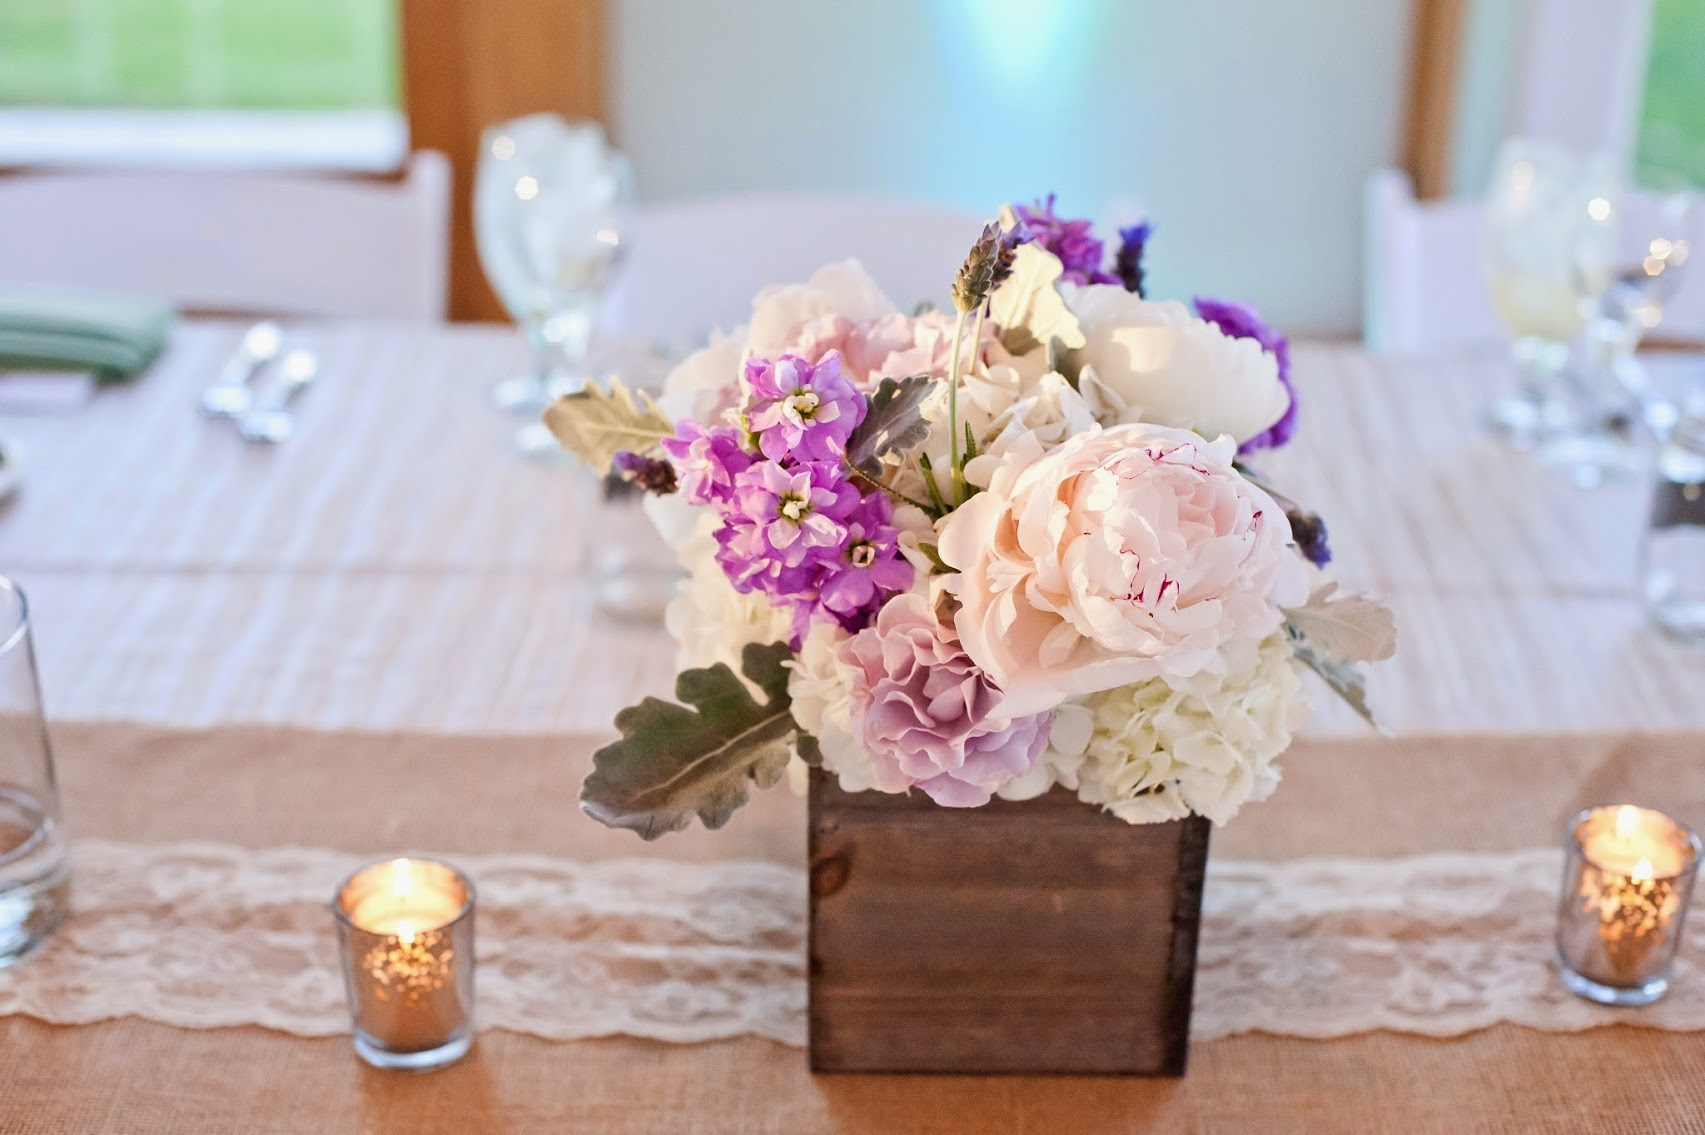 rustic-wooden-box-centerpiece-by-chicago-wedding-florist-life-in-bloom-at-the-danada-house.jpg